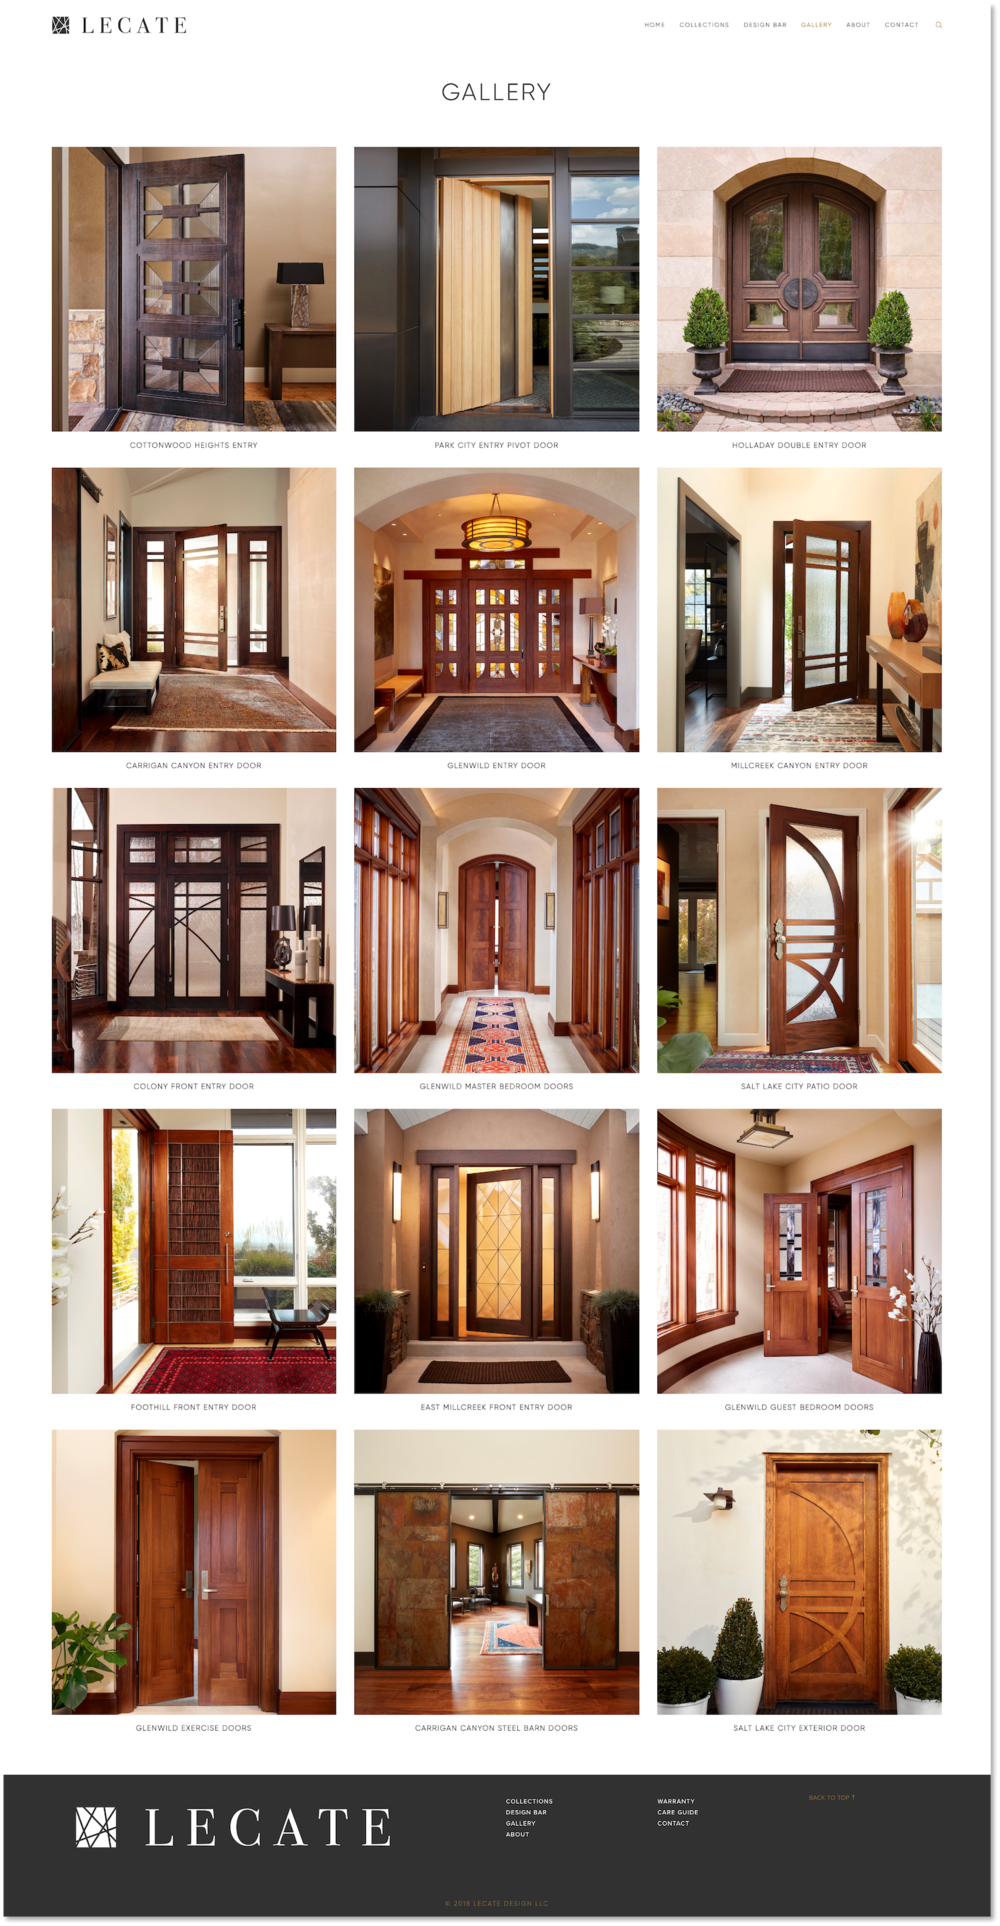 Lecate-Gallery-Page-Design-Website-Squarespace-Artisan-Doors-Salt-Lake-City-Treadaway-Design.png